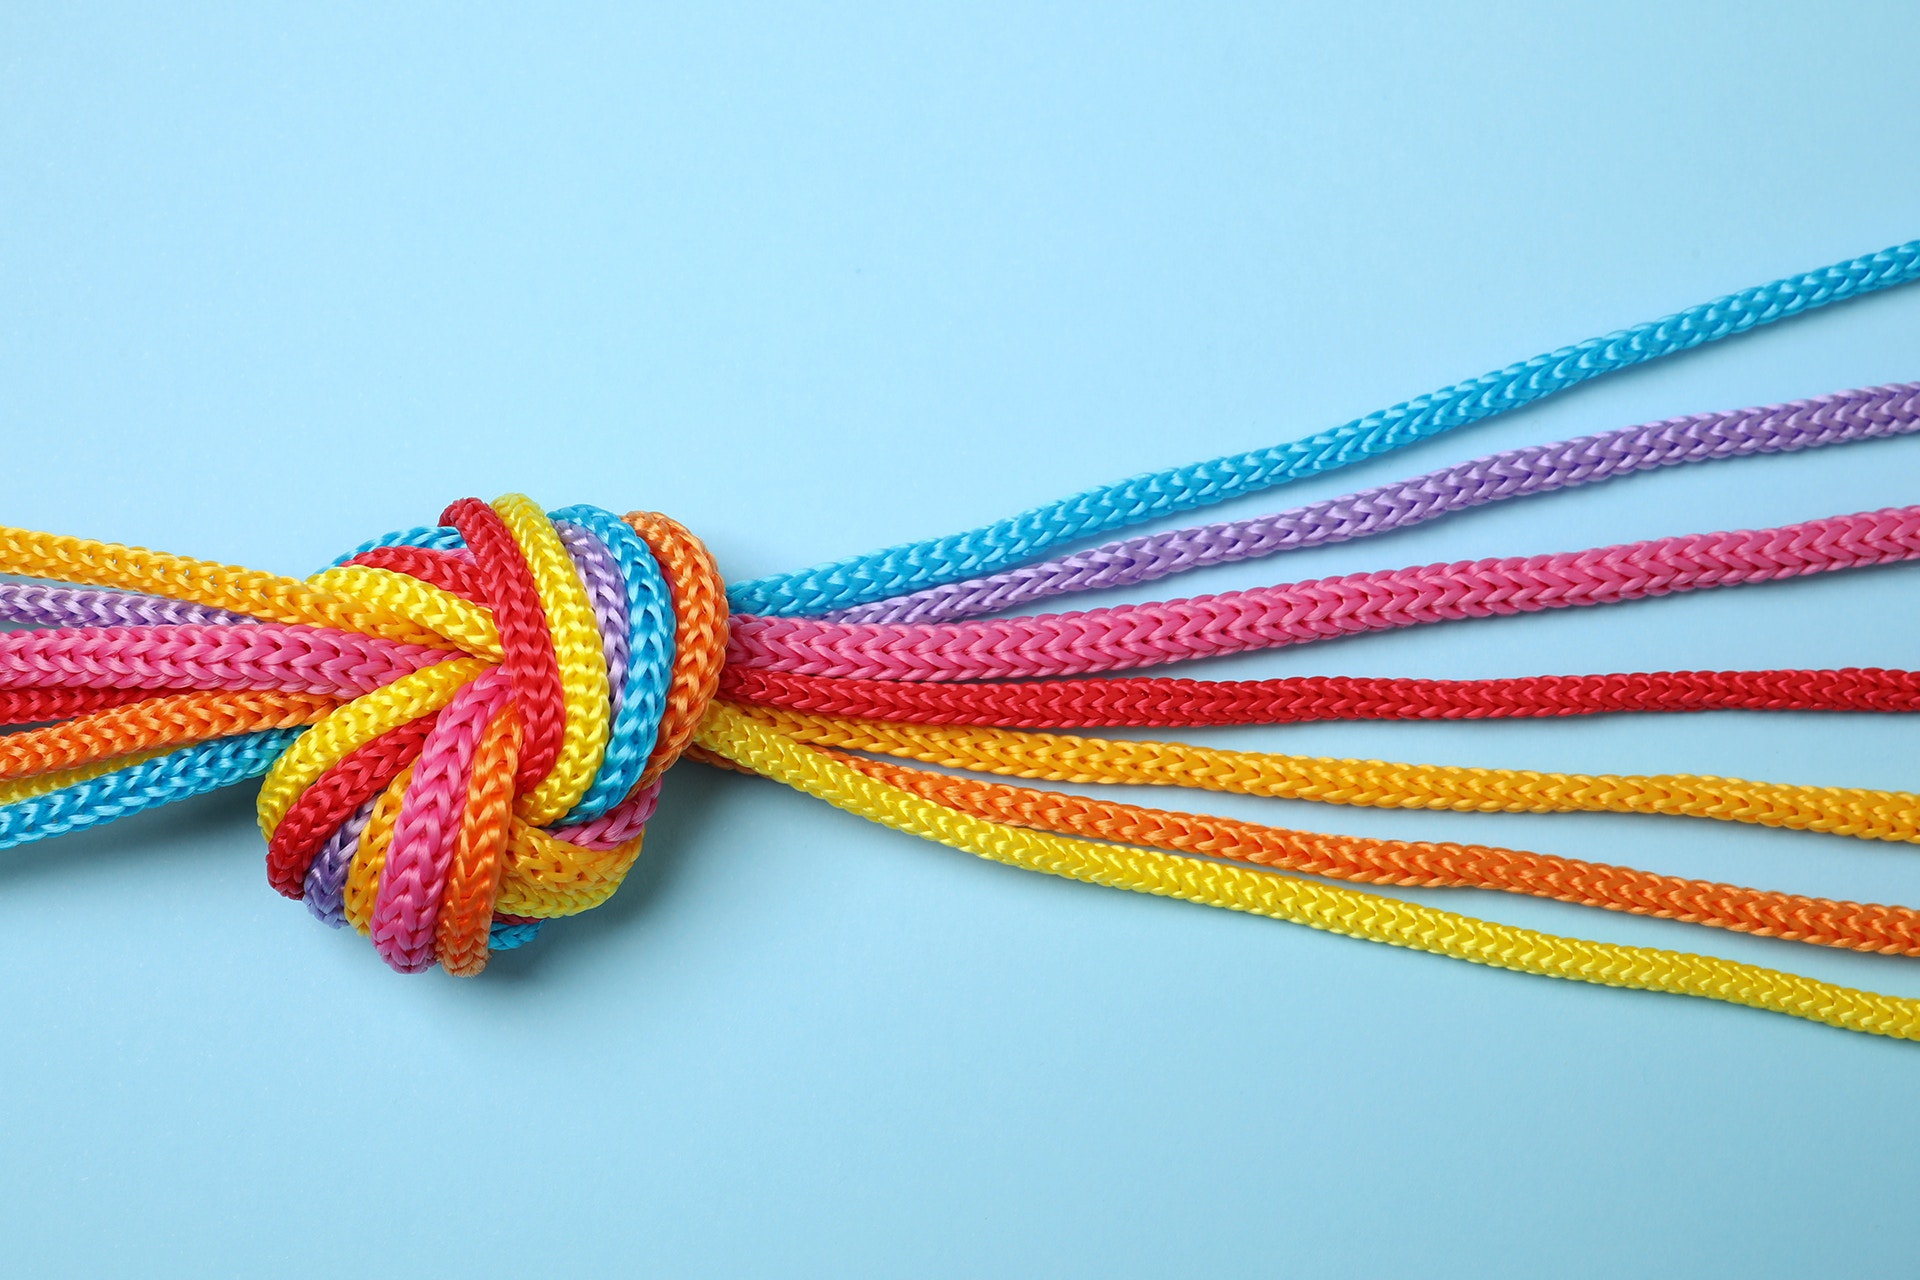 A group of different colored strings that are tied together in a knot. This image is being used as the hero image on a blog about reputation management.